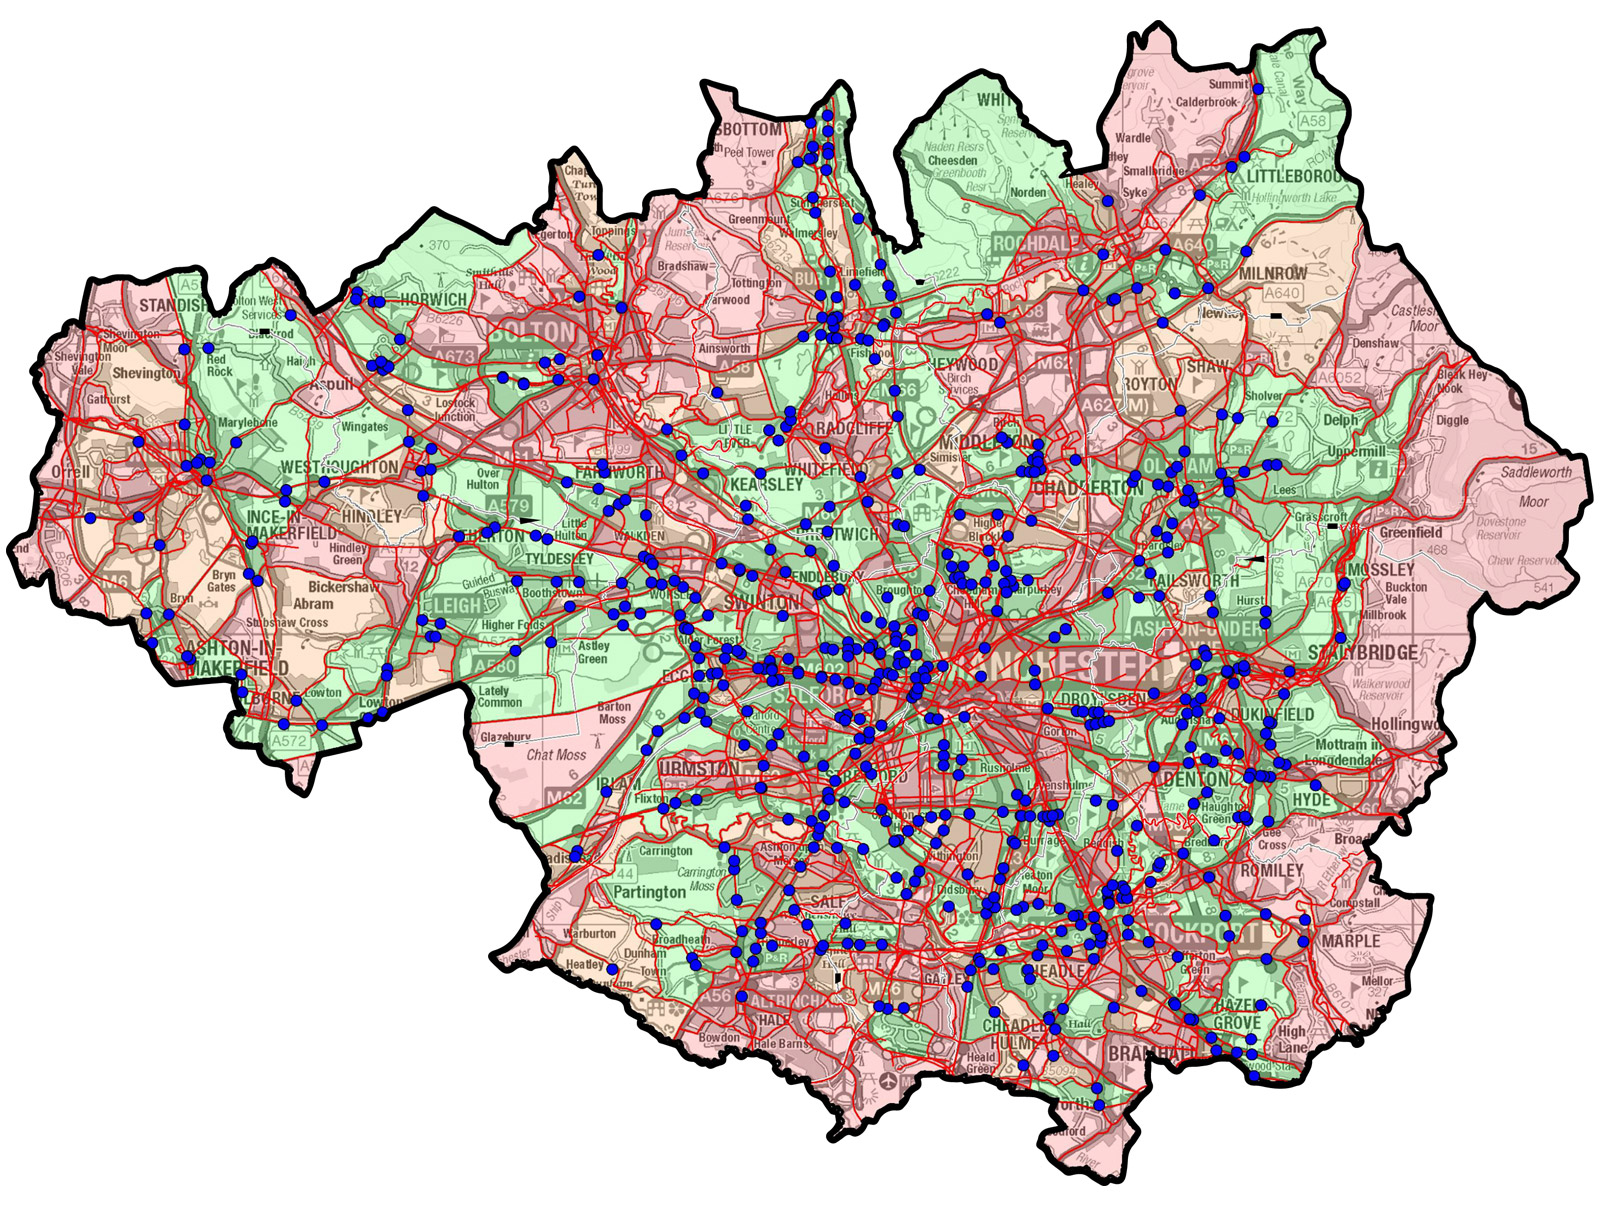 GreaterManchester-Before-Map-1